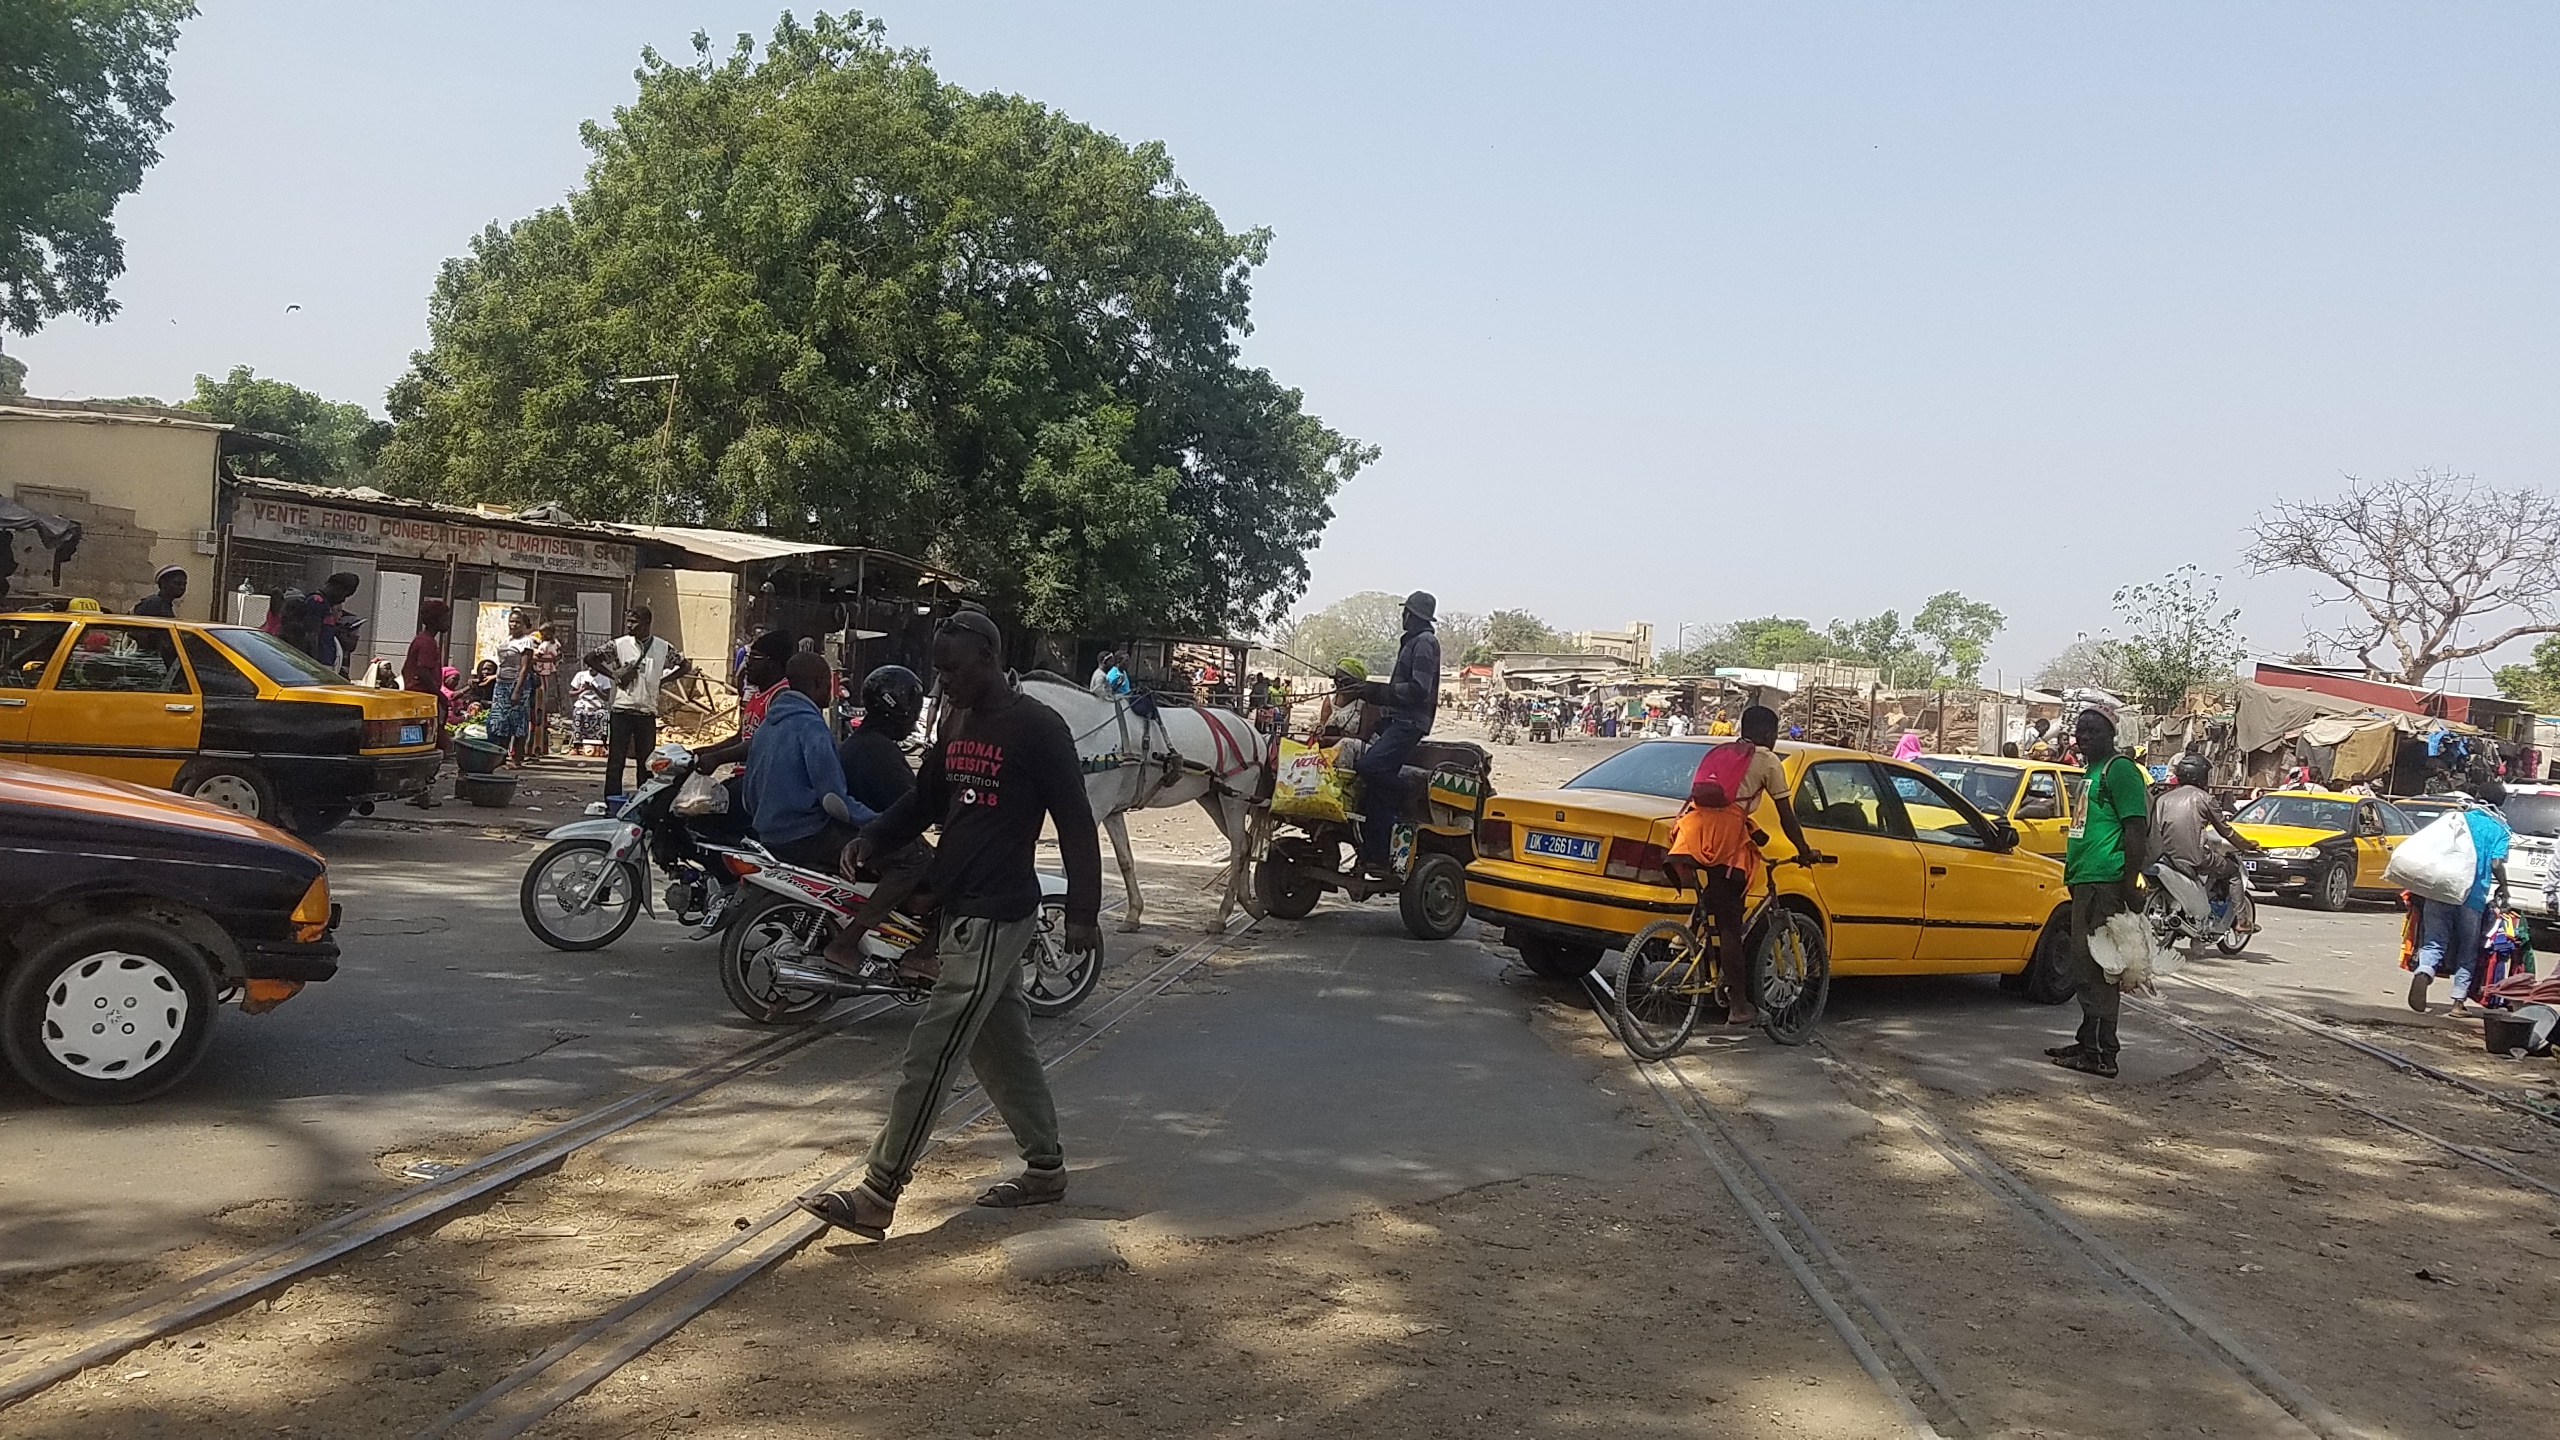 File:TRANSPORT SENEGAL MARCHE CENTRAL THIES.jpg - Wikimedia Commons